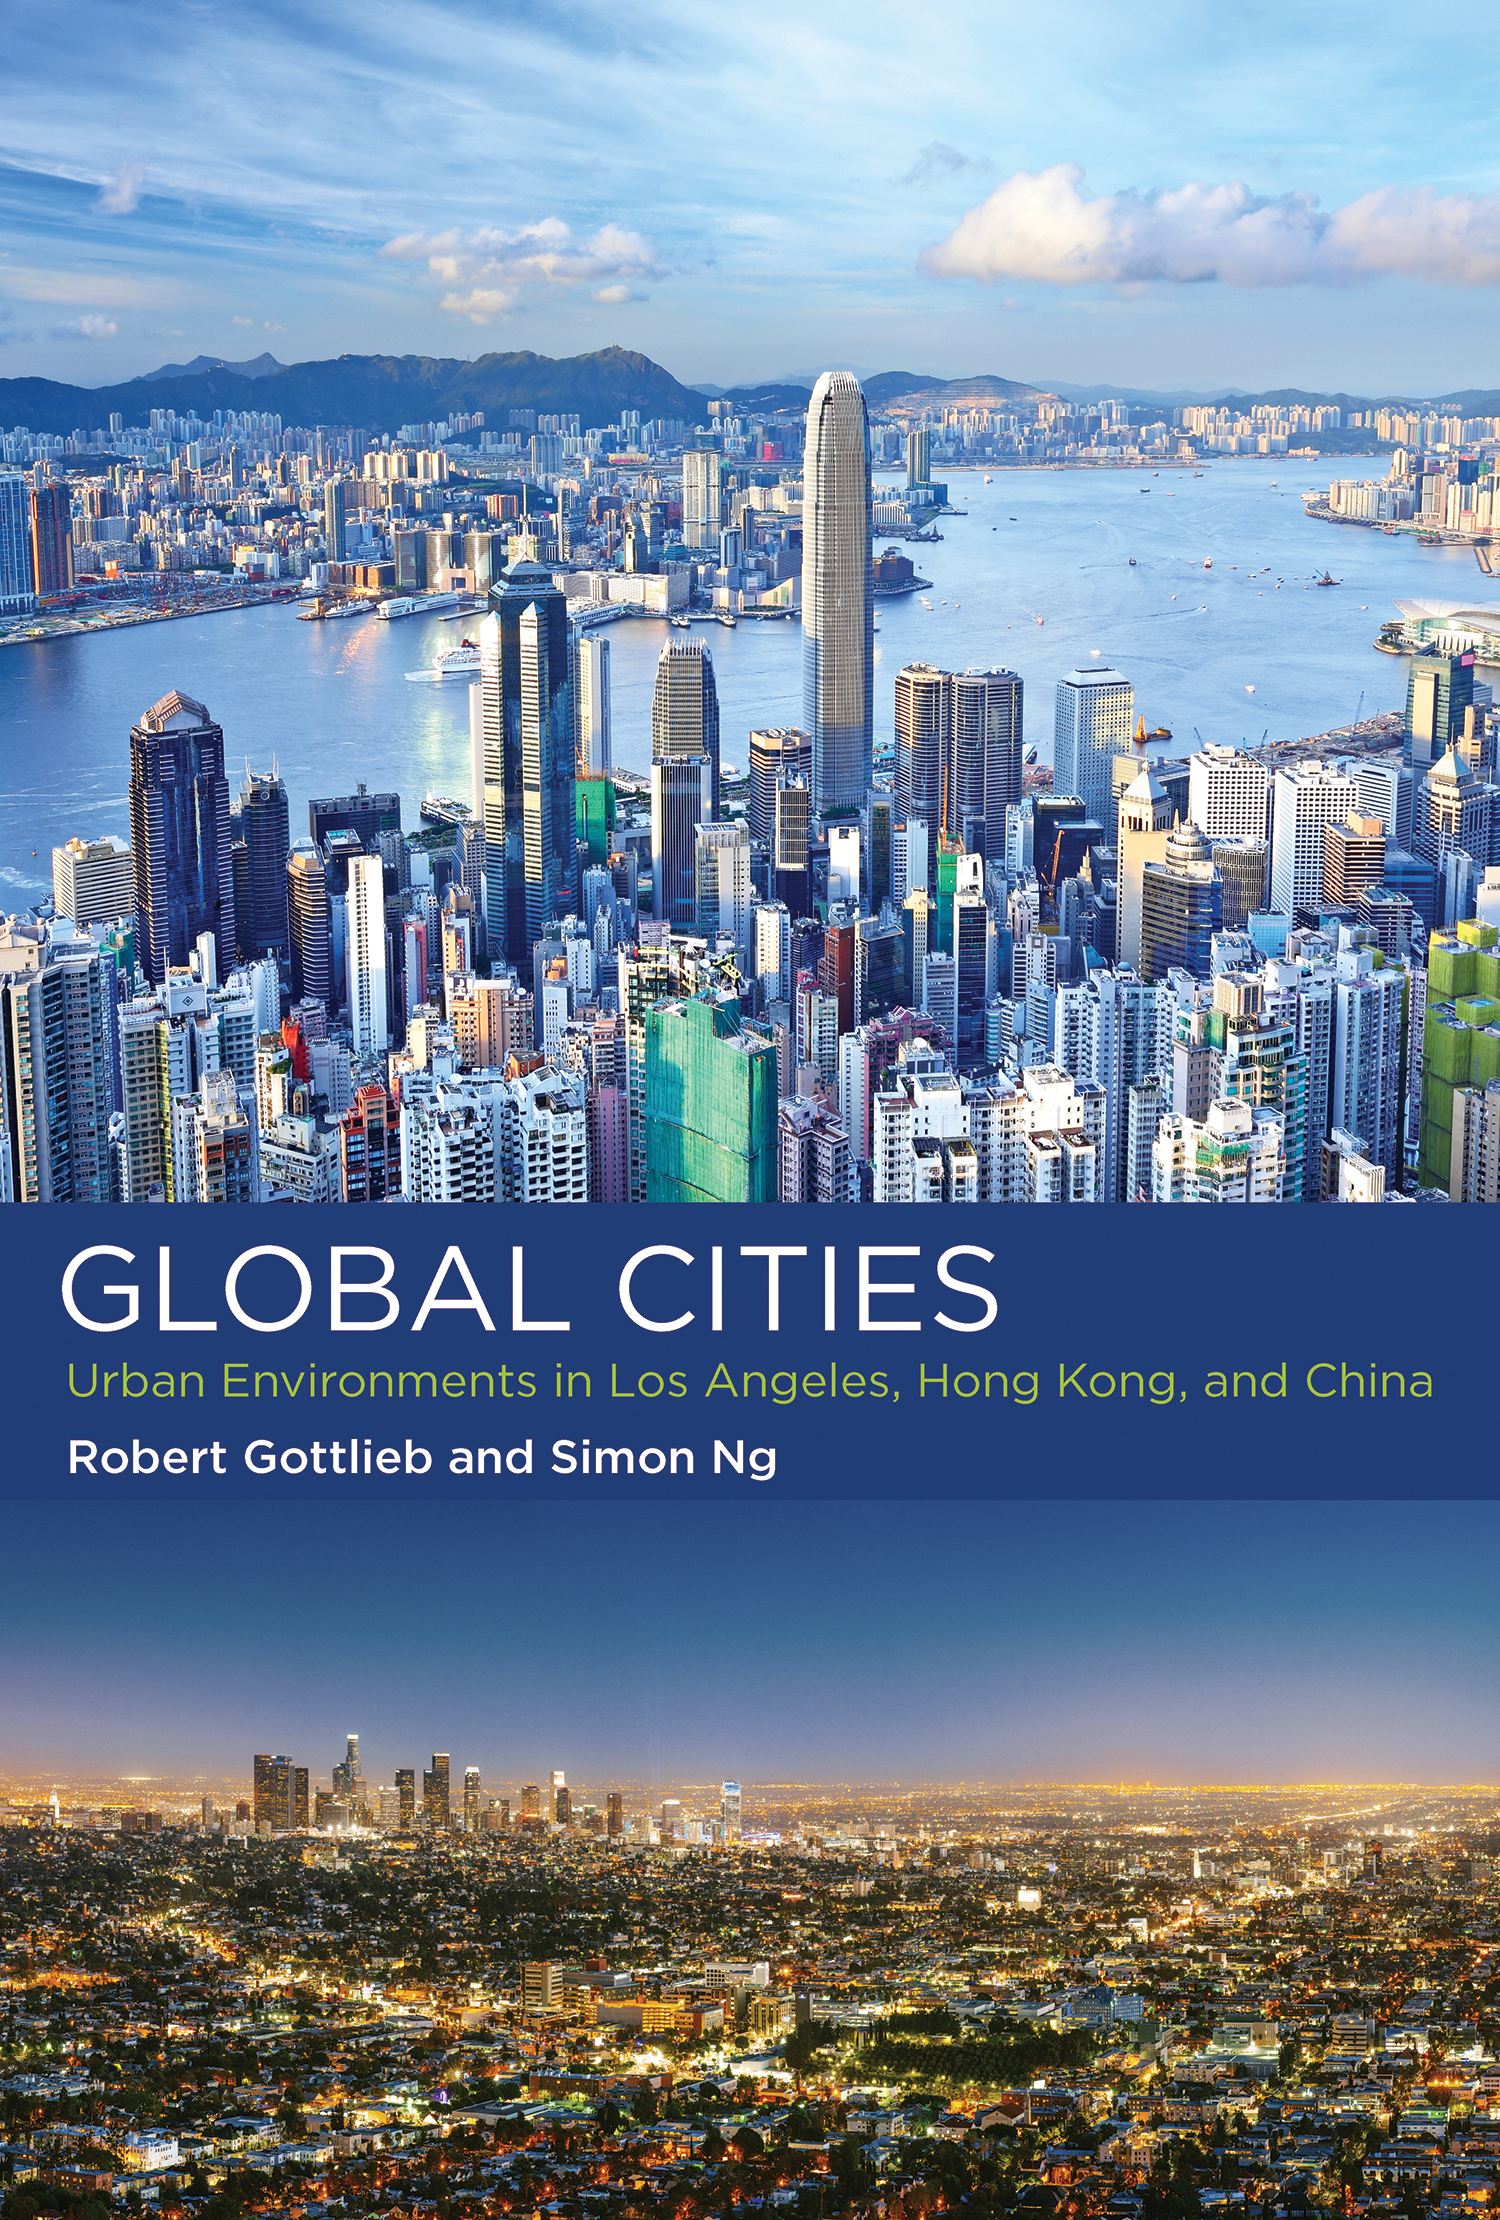 Book review Global Cities  Urban Environments in Los